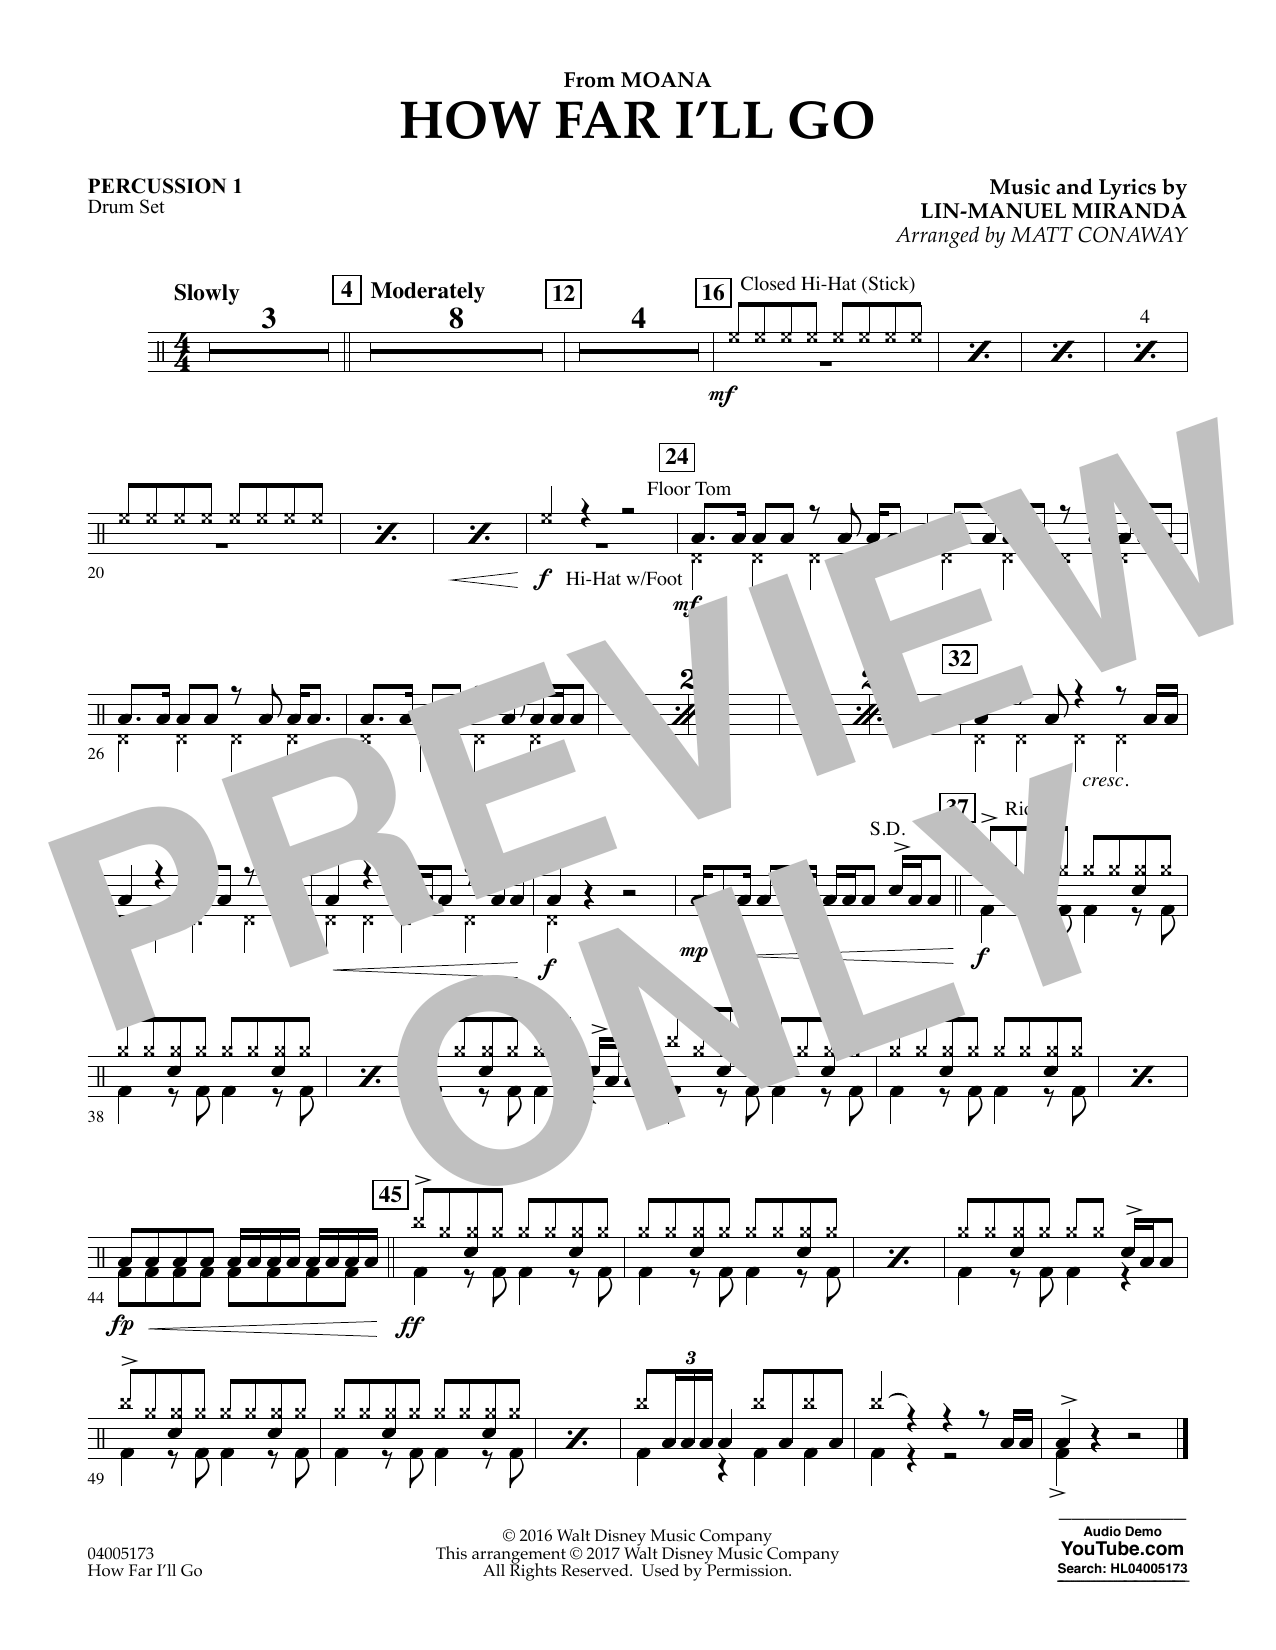 How Far I'll Go (from Moana) - Percussion 1 (Concert Band)